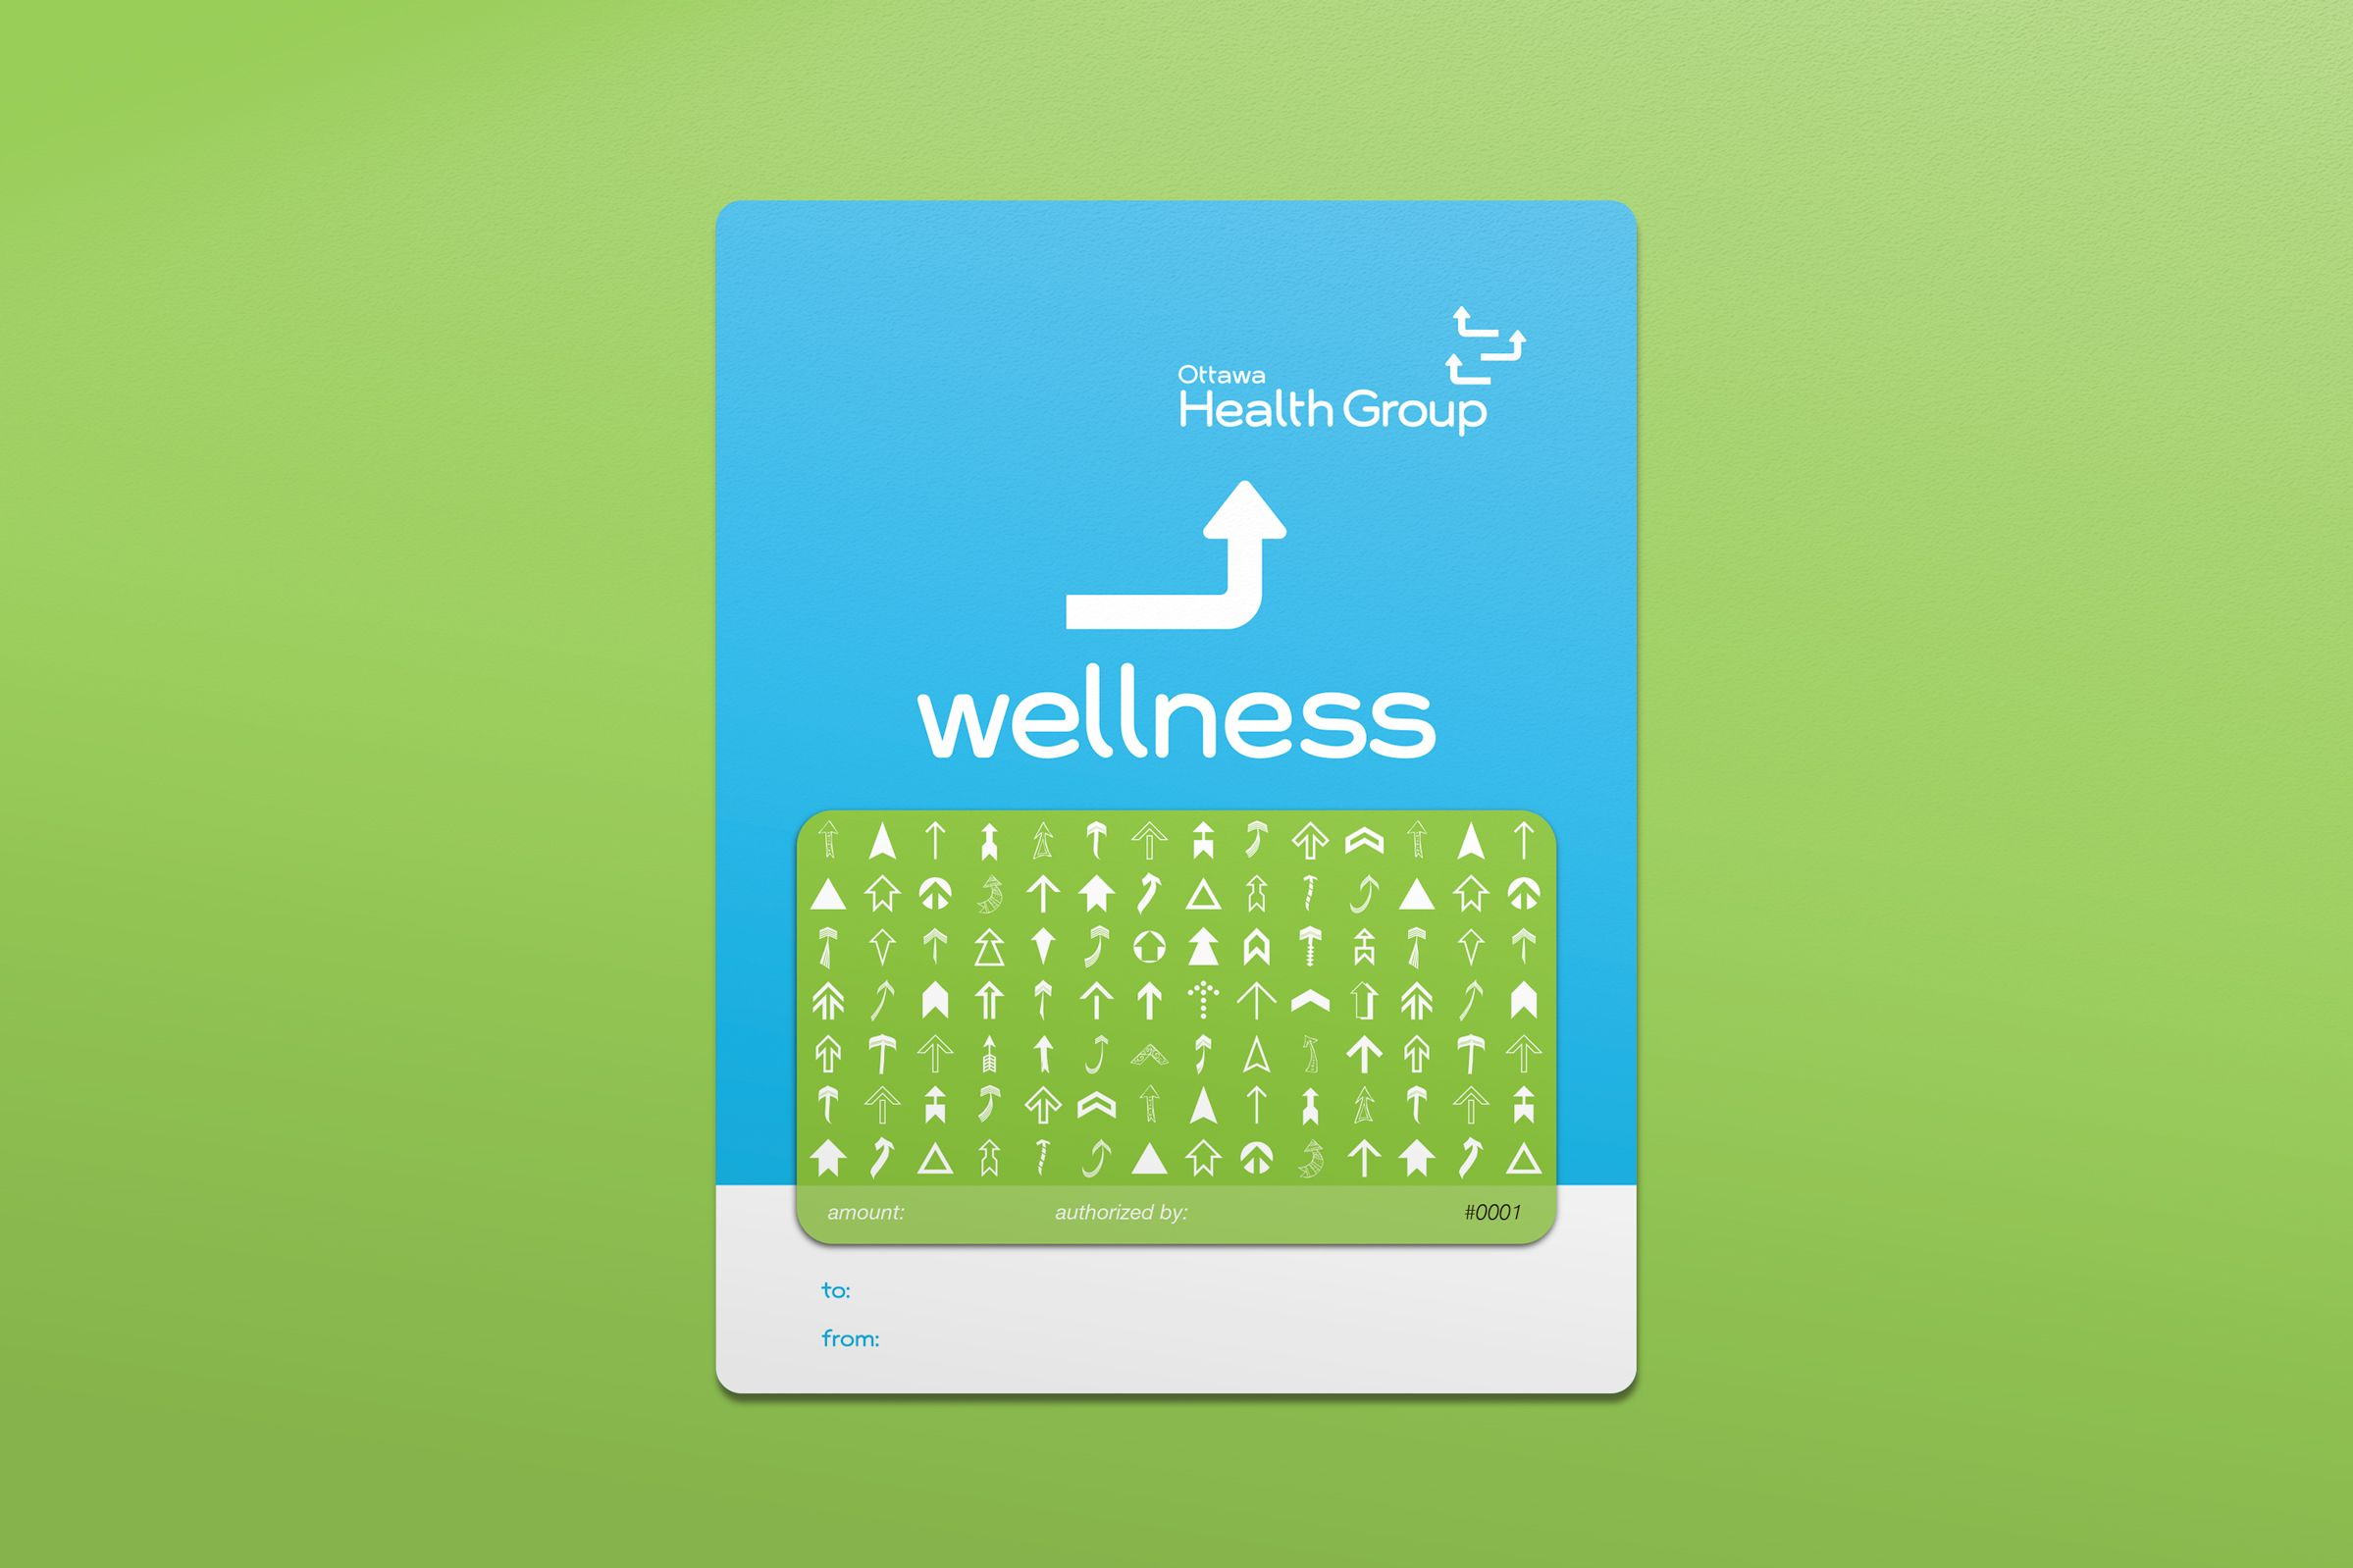 Gift Card for Ottawa Health Group, a health care provider by Graphic Designer idApostle